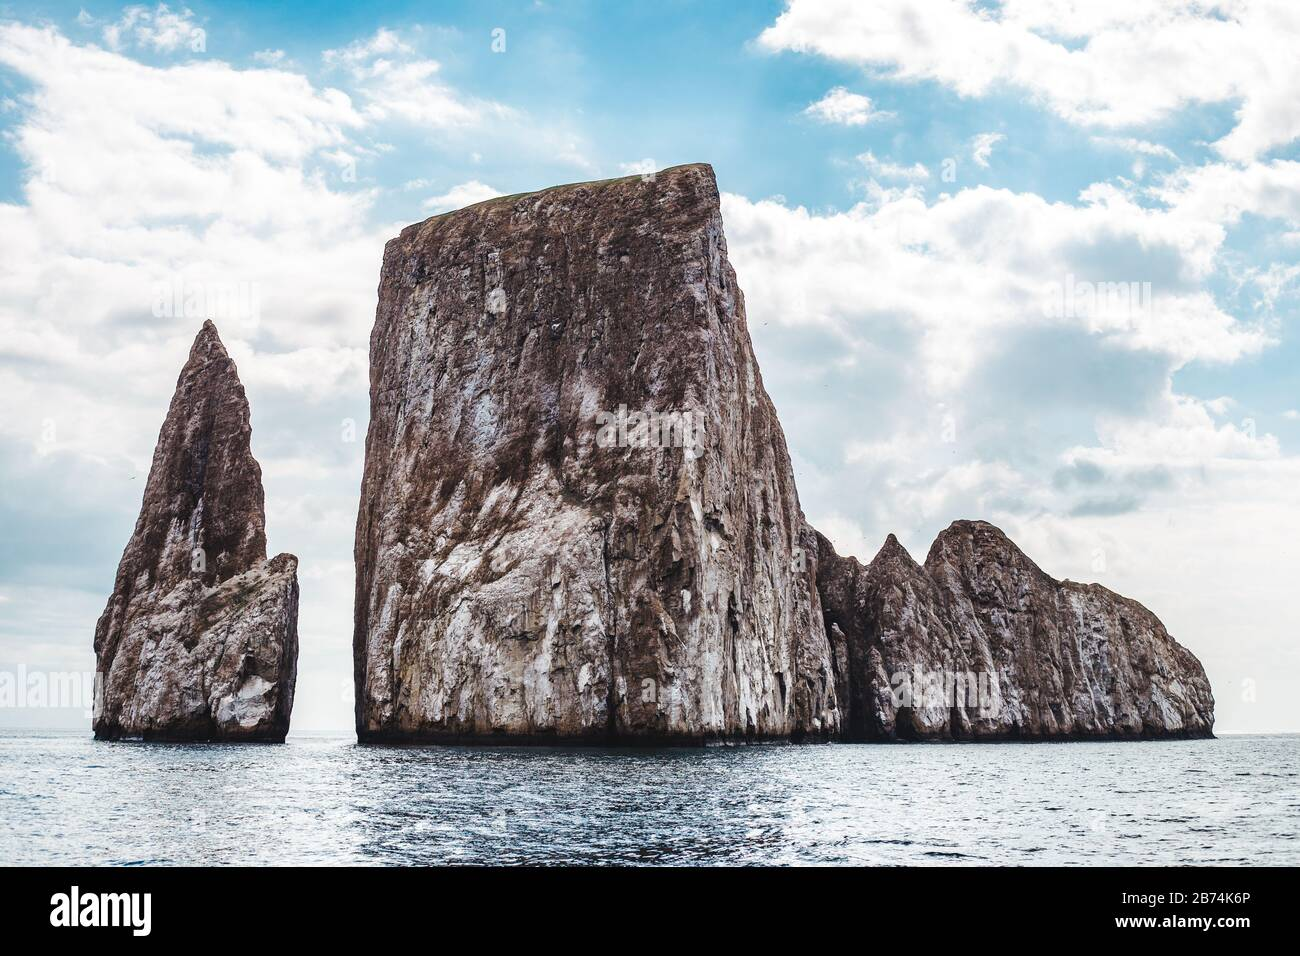 Kicker Rock in the Galapagos Islands, a key snorkeling and diving spot for tourists, with the 300m drop being home to hammerhead sharks, reef sharks, Stock Photo